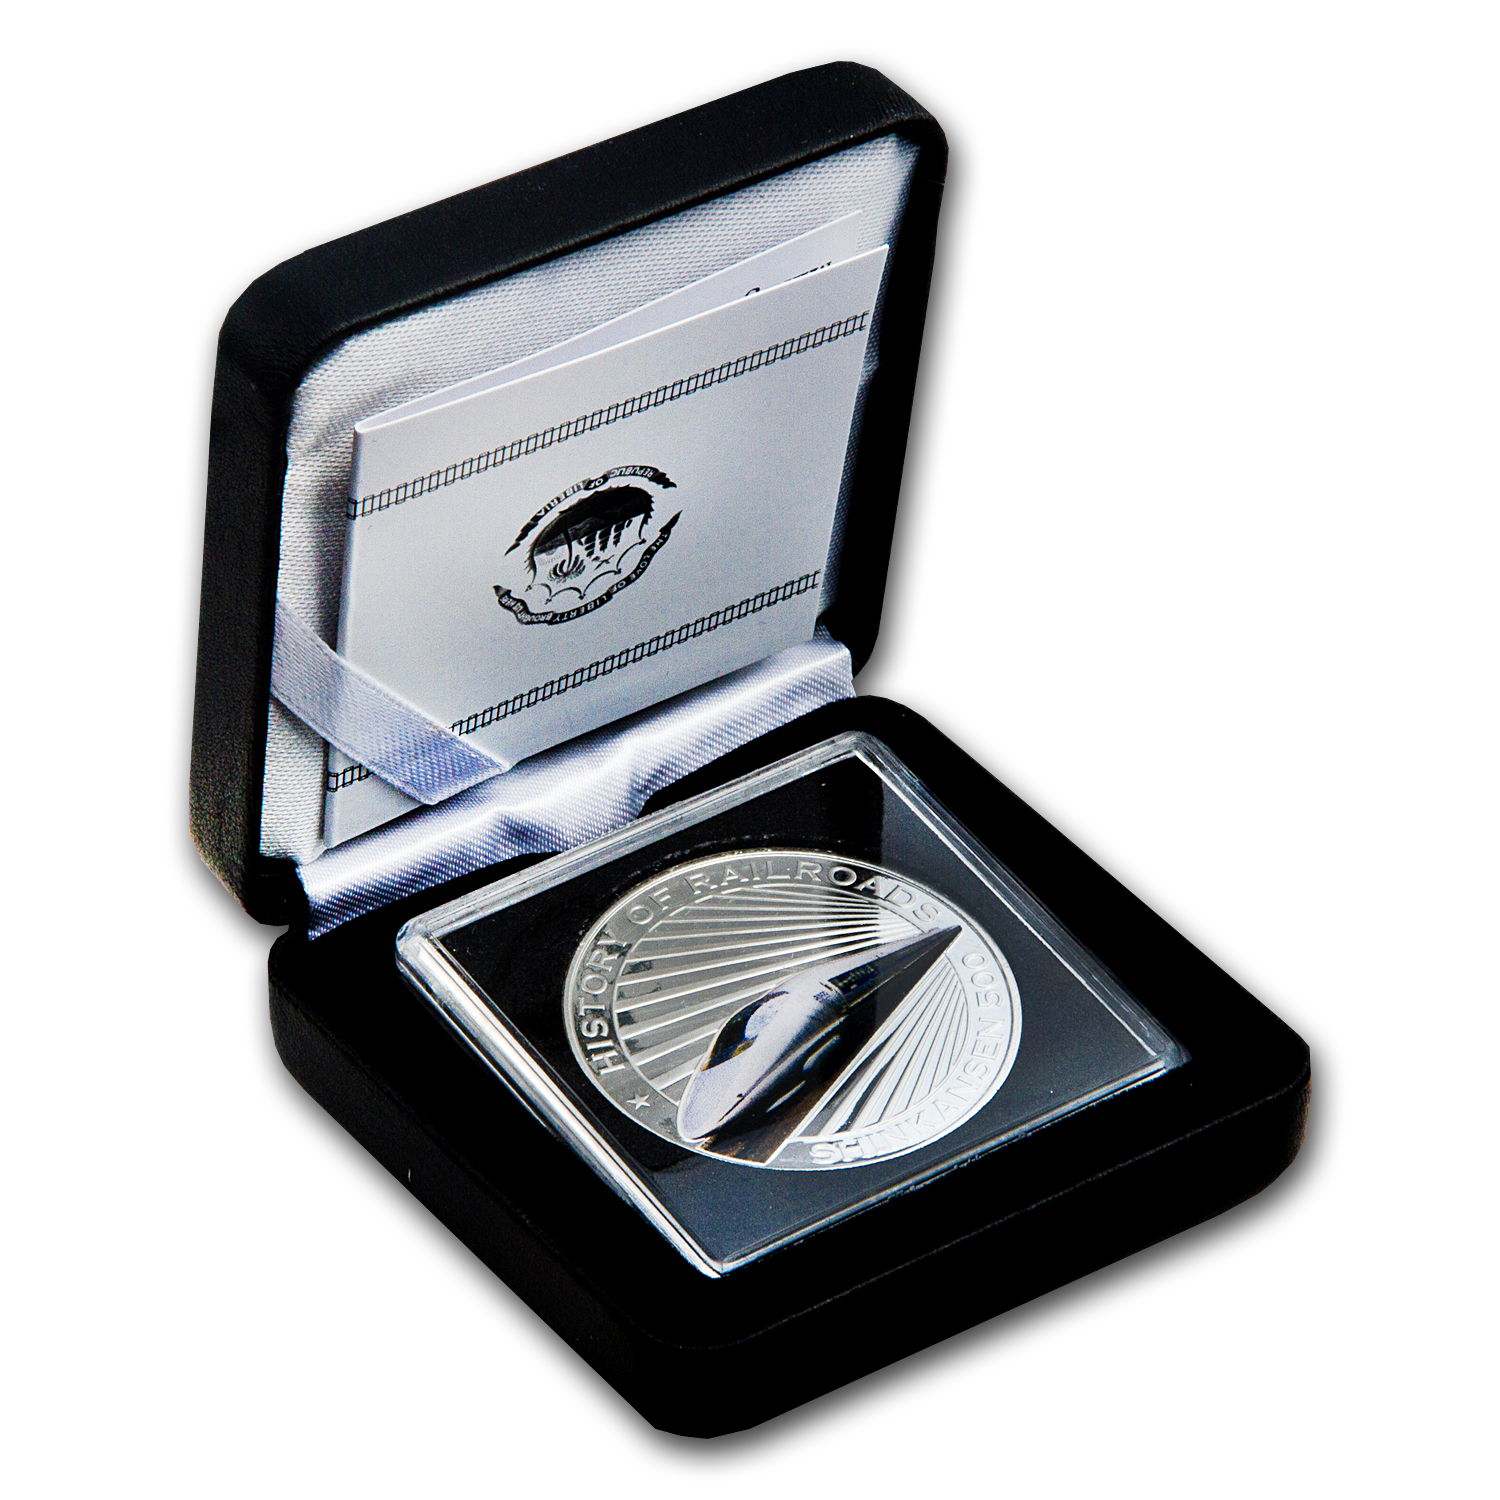 Liberia 2011 5 Dollars Silver Proof - Bullet Train (Shinkansen)